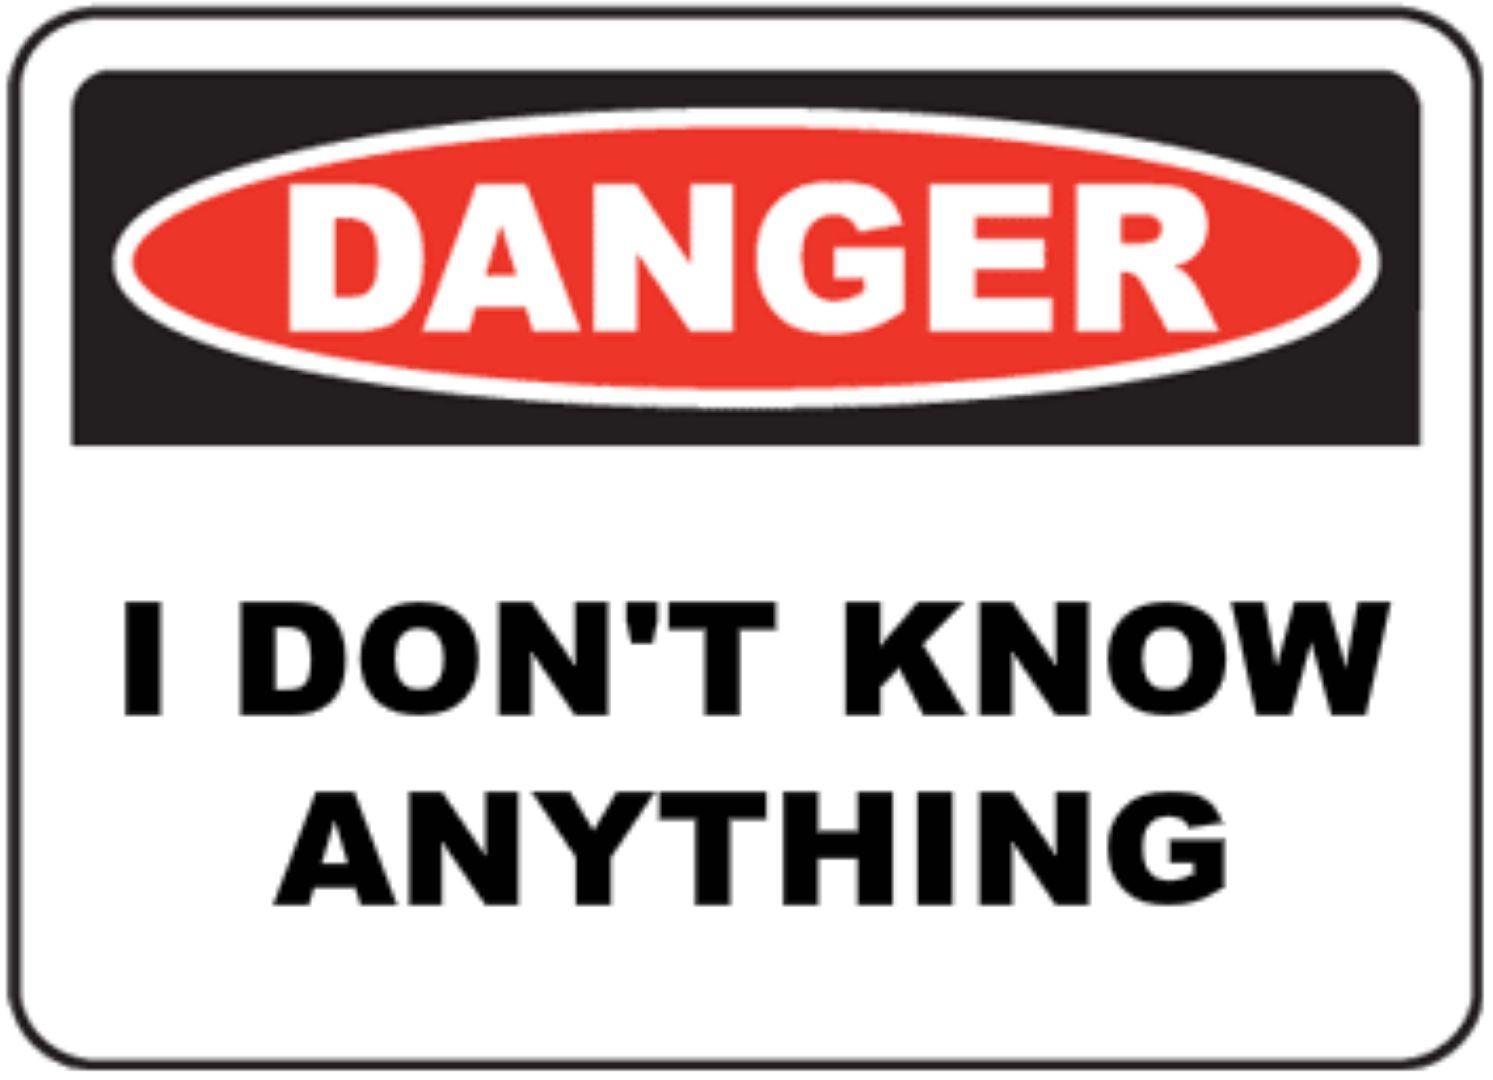 Wall Sticker Quotes Uk Funny Warning Sign I Don T Know Anything Sticker Self